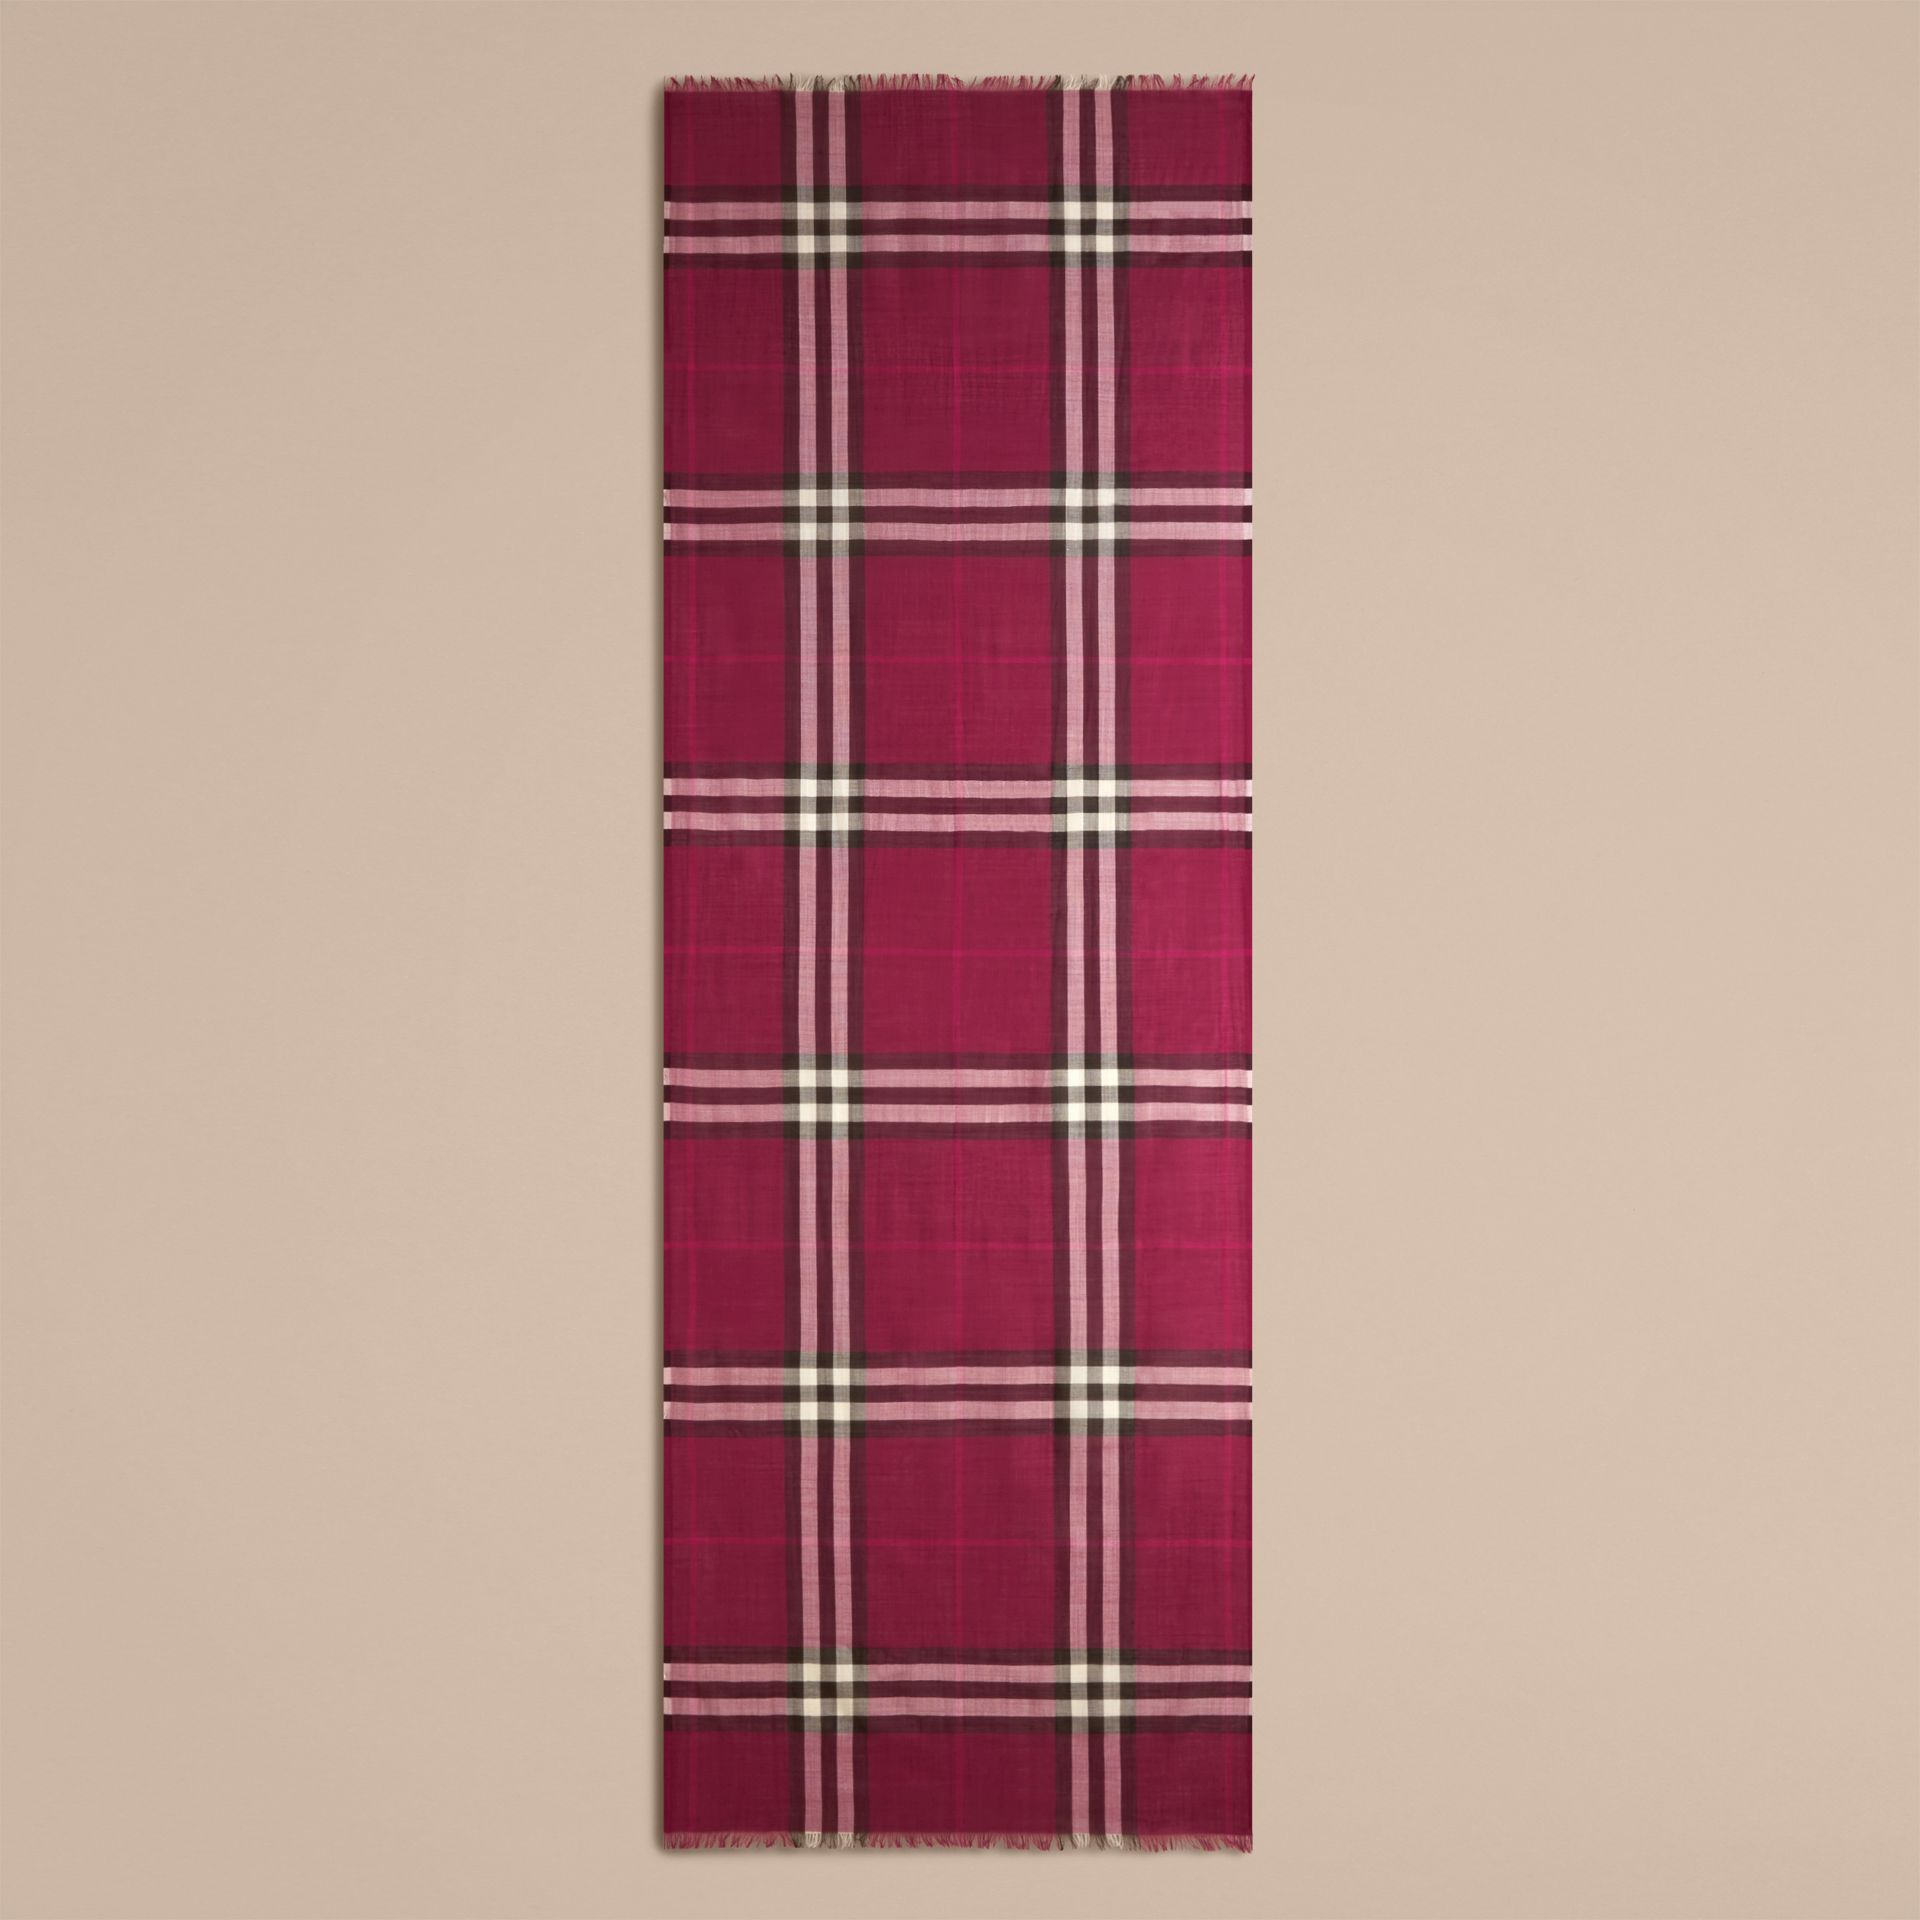 Plum check Lightweight Check Wool and Silk Scarf Plum - gallery image 5